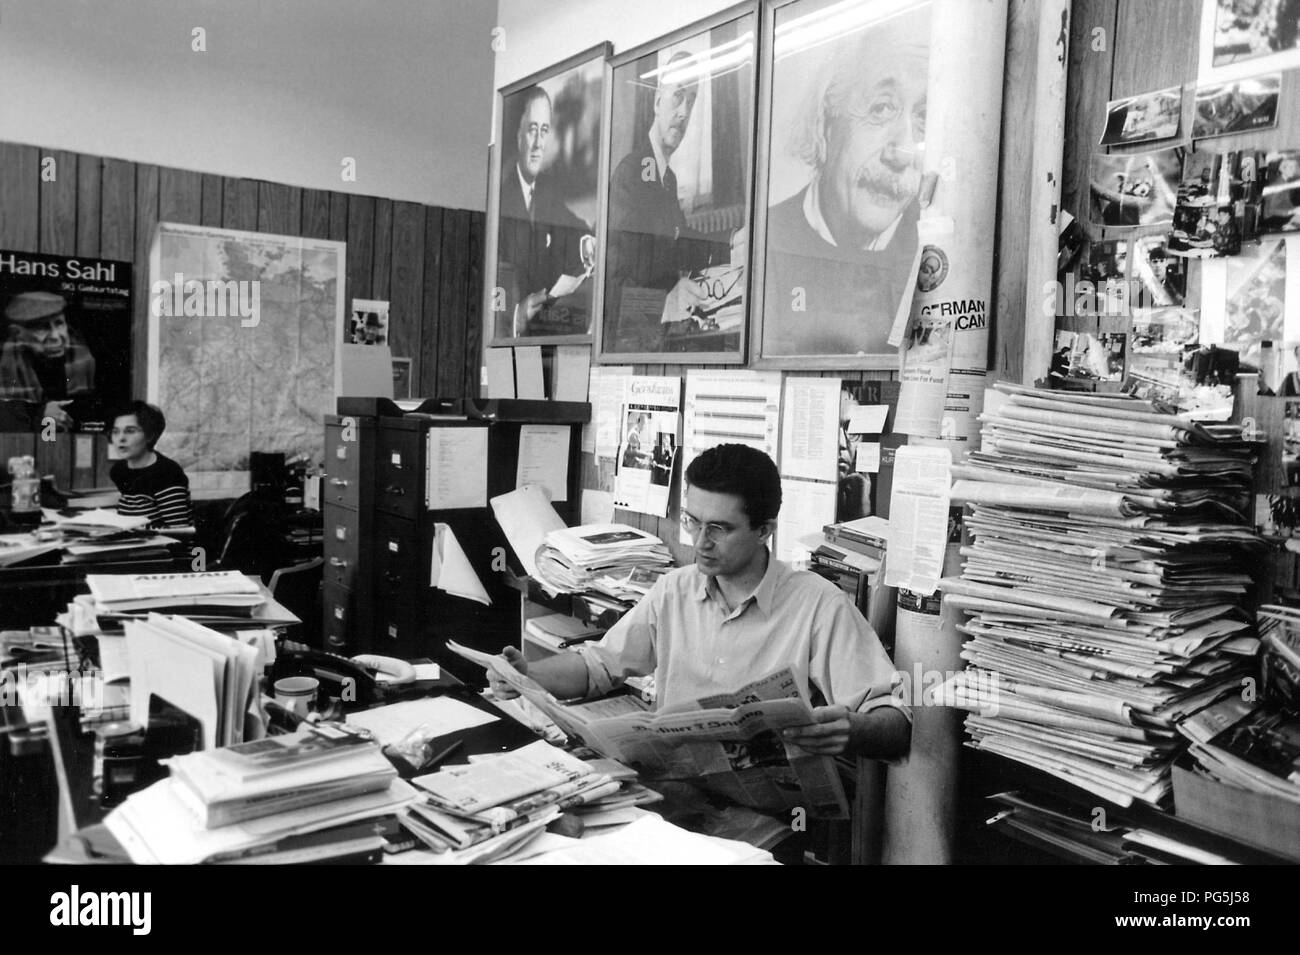 Editor andreas fink in the editorial office of the newspaper structure in new york